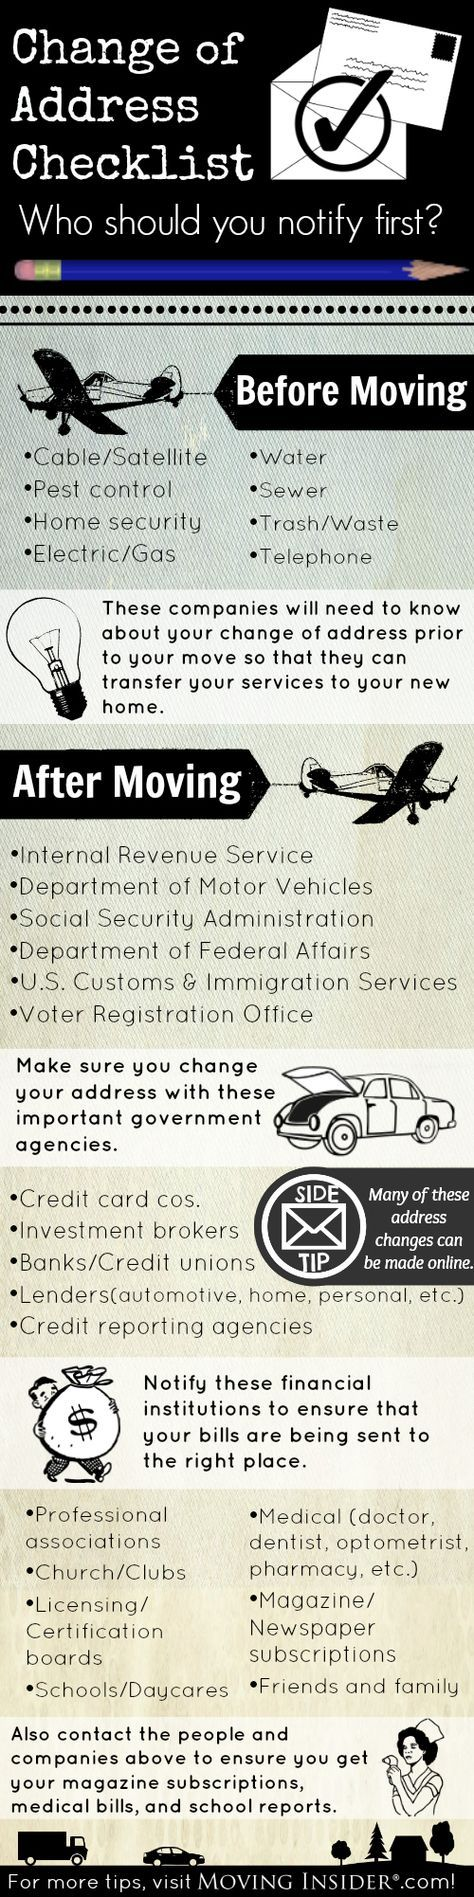 One step of moving that many people forget is changing their address. We've come up with a list of companies to notify when you move. More tips at movinginsider.com!